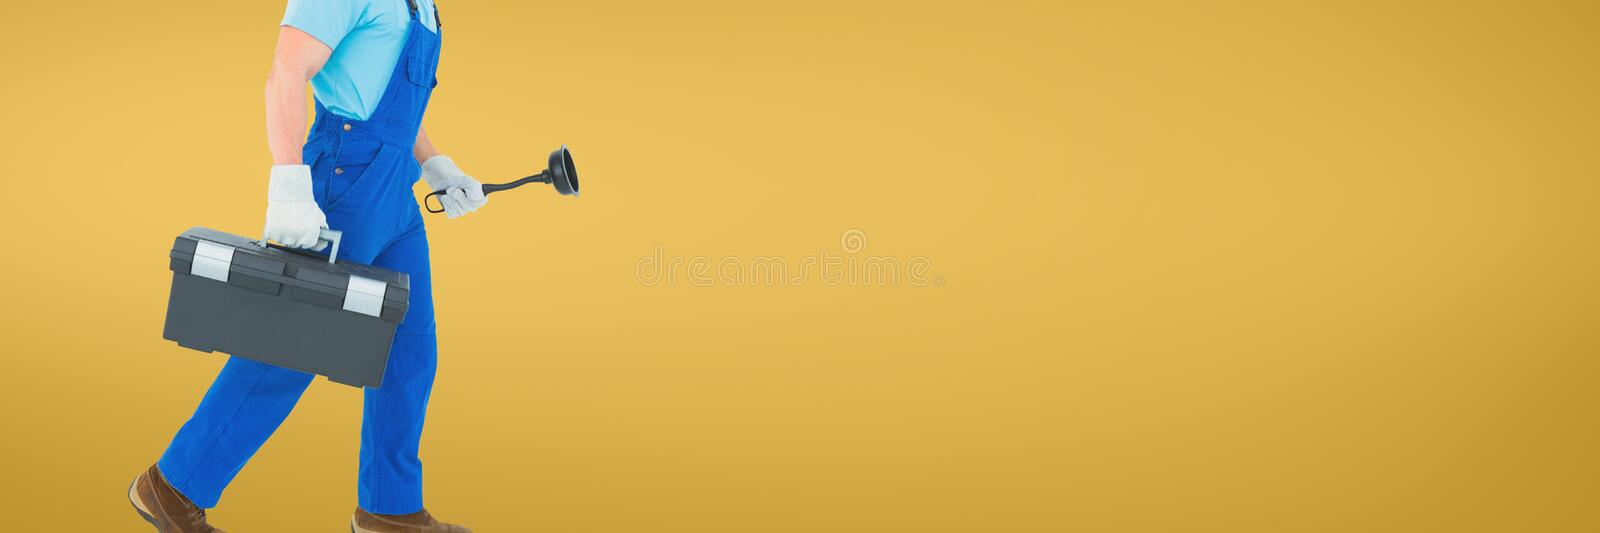 Plumber man holding a plunger and a toolbox against yellow background. Digital composite of Plumber man holding a plunger and a toolbox against yellow background stock photos